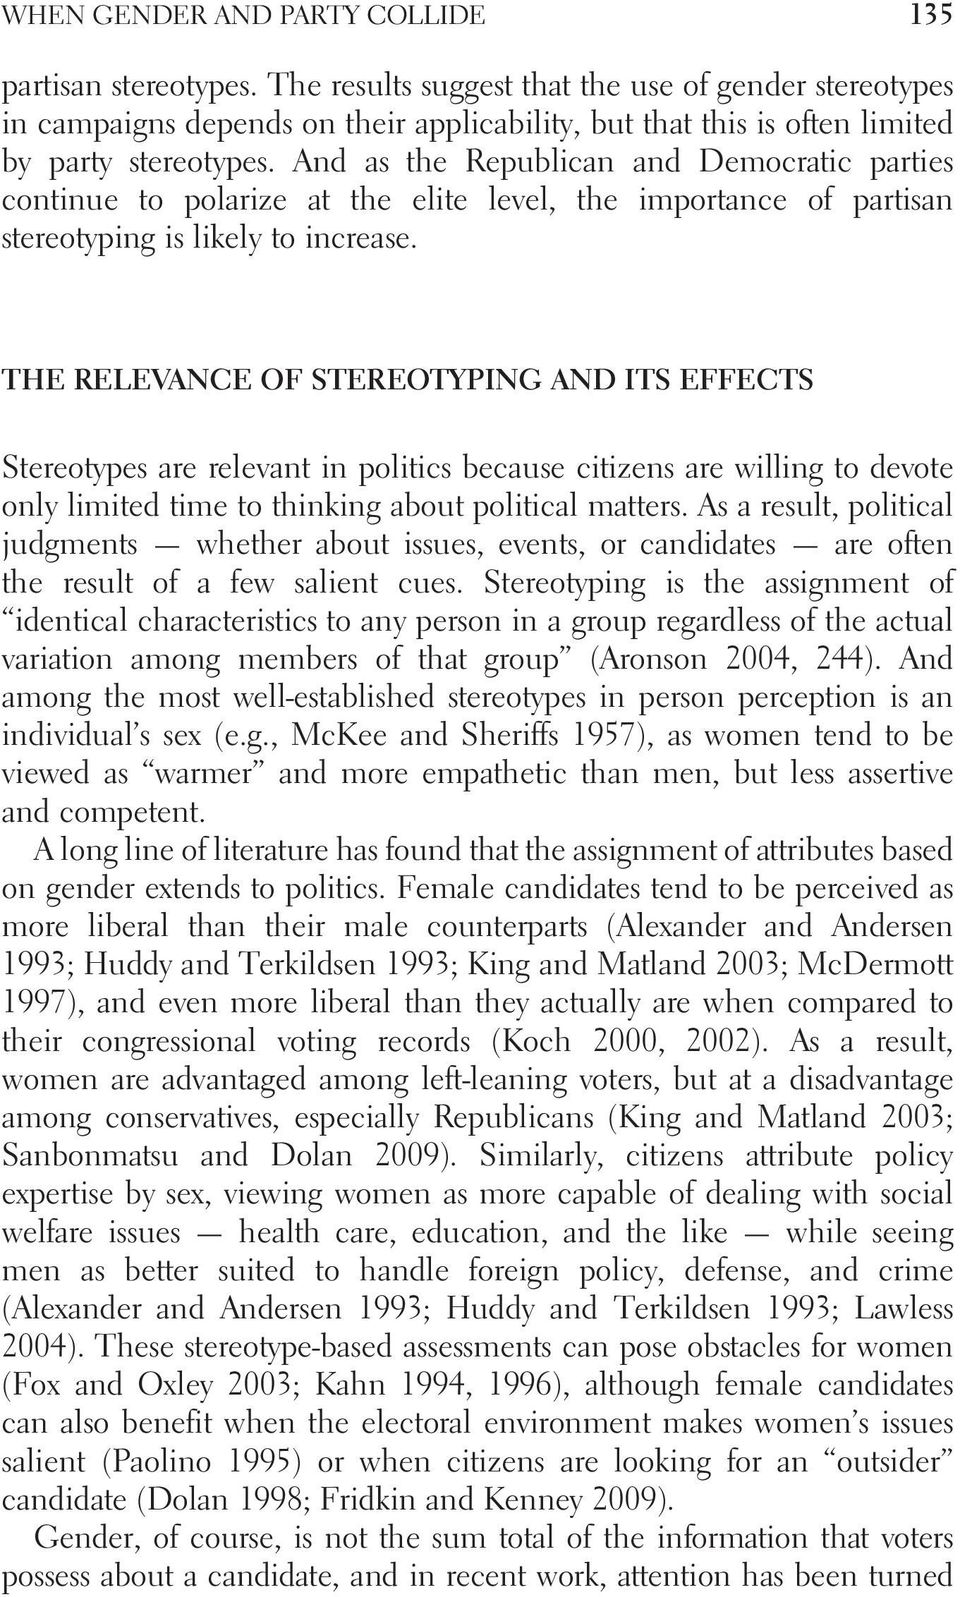 And as the Republican and Democratic parties continue to polarize at the elite level, the importance of partisan stereotyping is likely to increase.